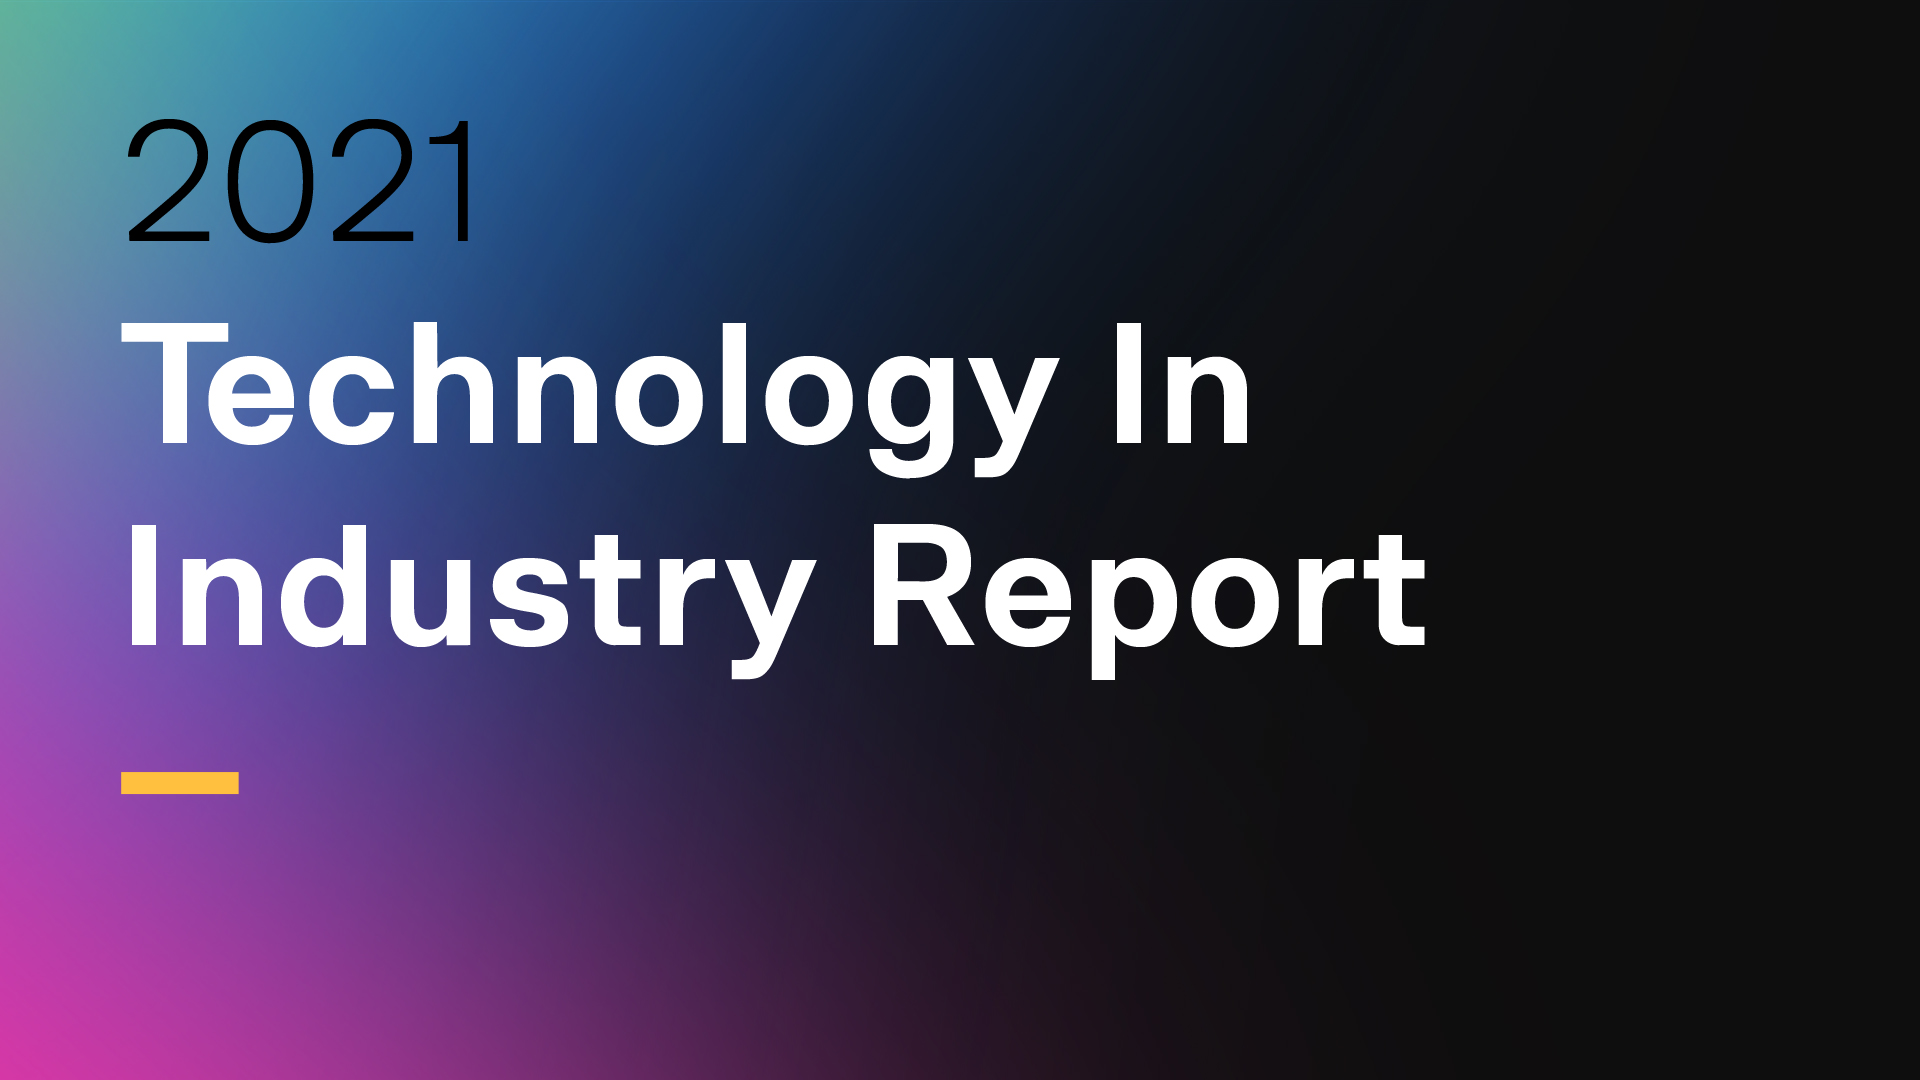 Technology in Industry Reveal 2021: Manufacturing Resilience & Innovation